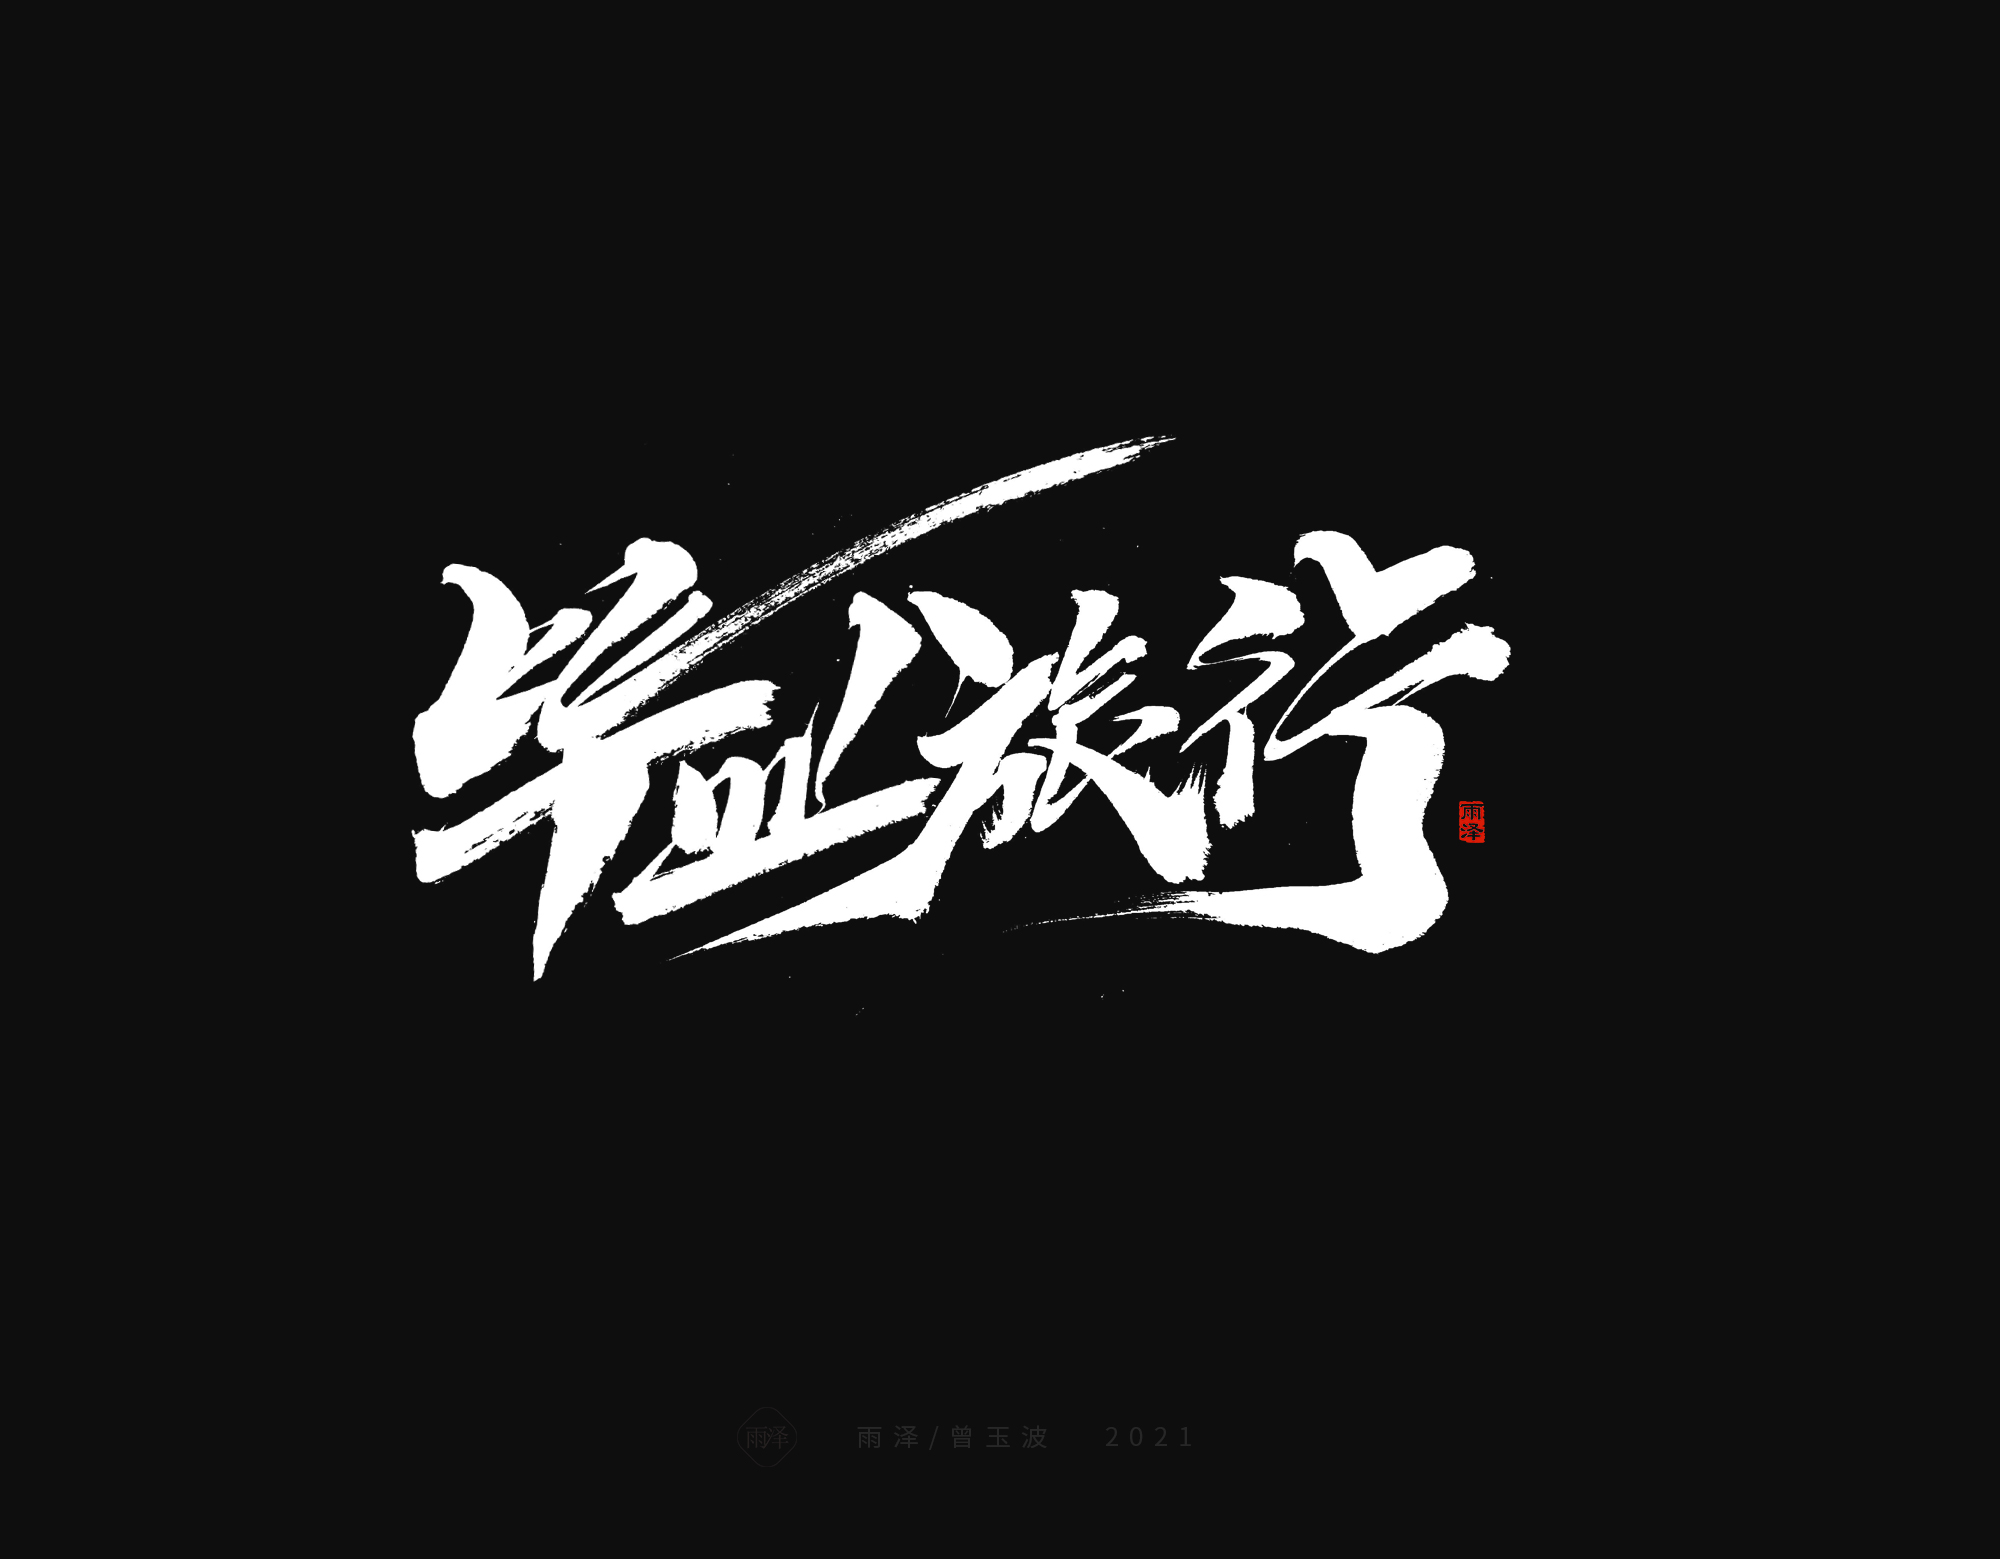 23P Collection of the latest Chinese font design schemes in 2021 #.122